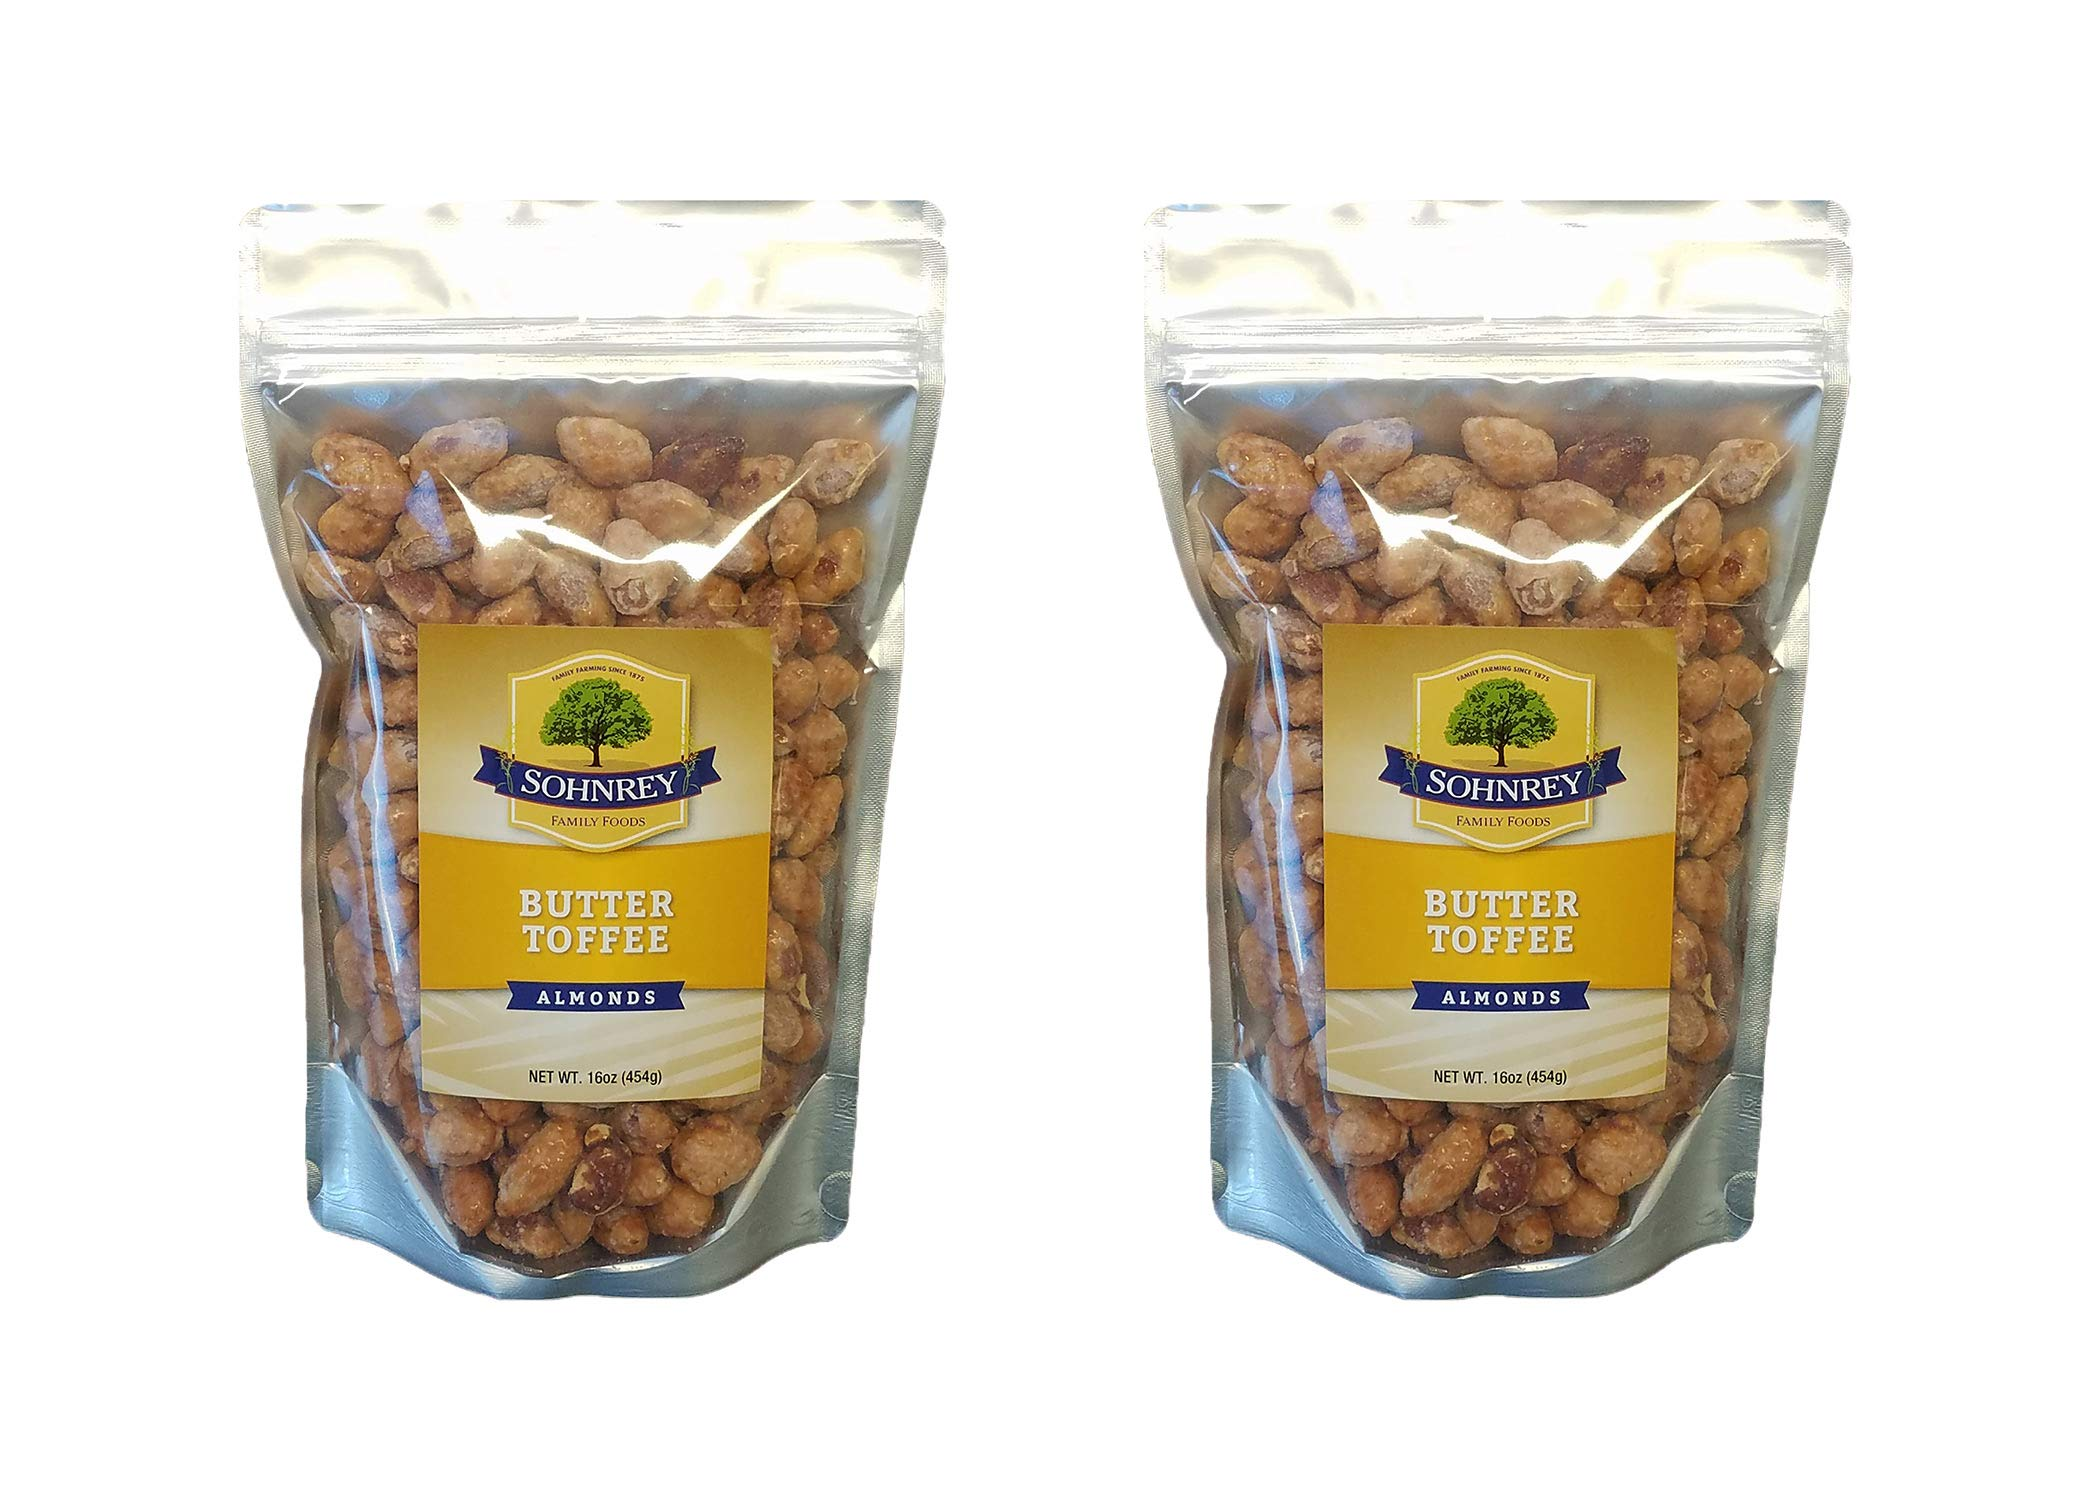 Butter Toffee Almonds Fresh Gourmet Sweet and Salty Crunch (16 oz) Resealable Bag from Sohnrey Family Foods (2-Pack (32 oz)) by Sohnrey Family Foods